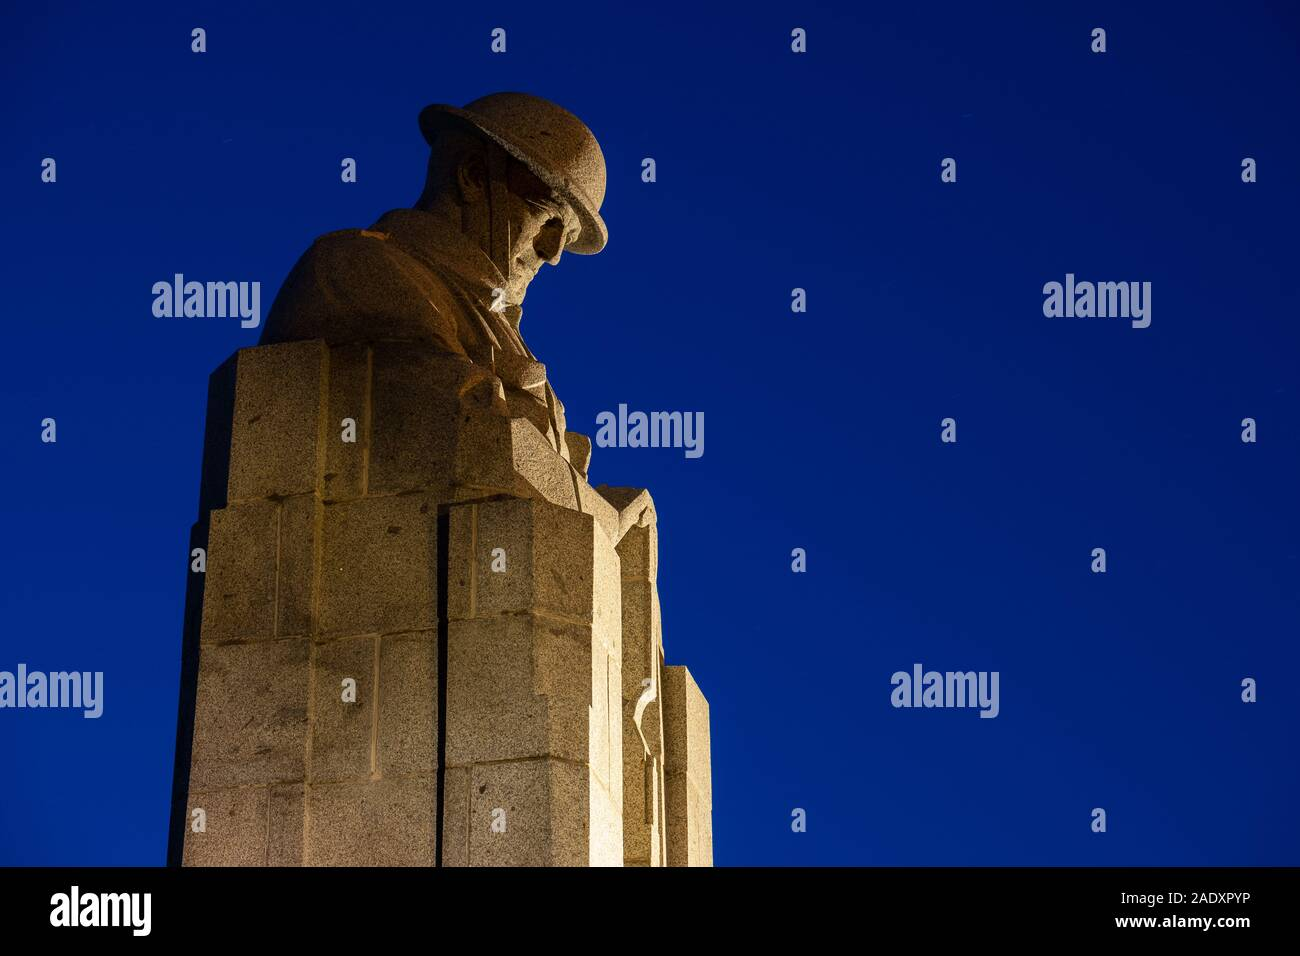 The Canadian Memorial at Vancouver Corner before dawn, St Julien, Ypres Salient, Belgium Stock Photo